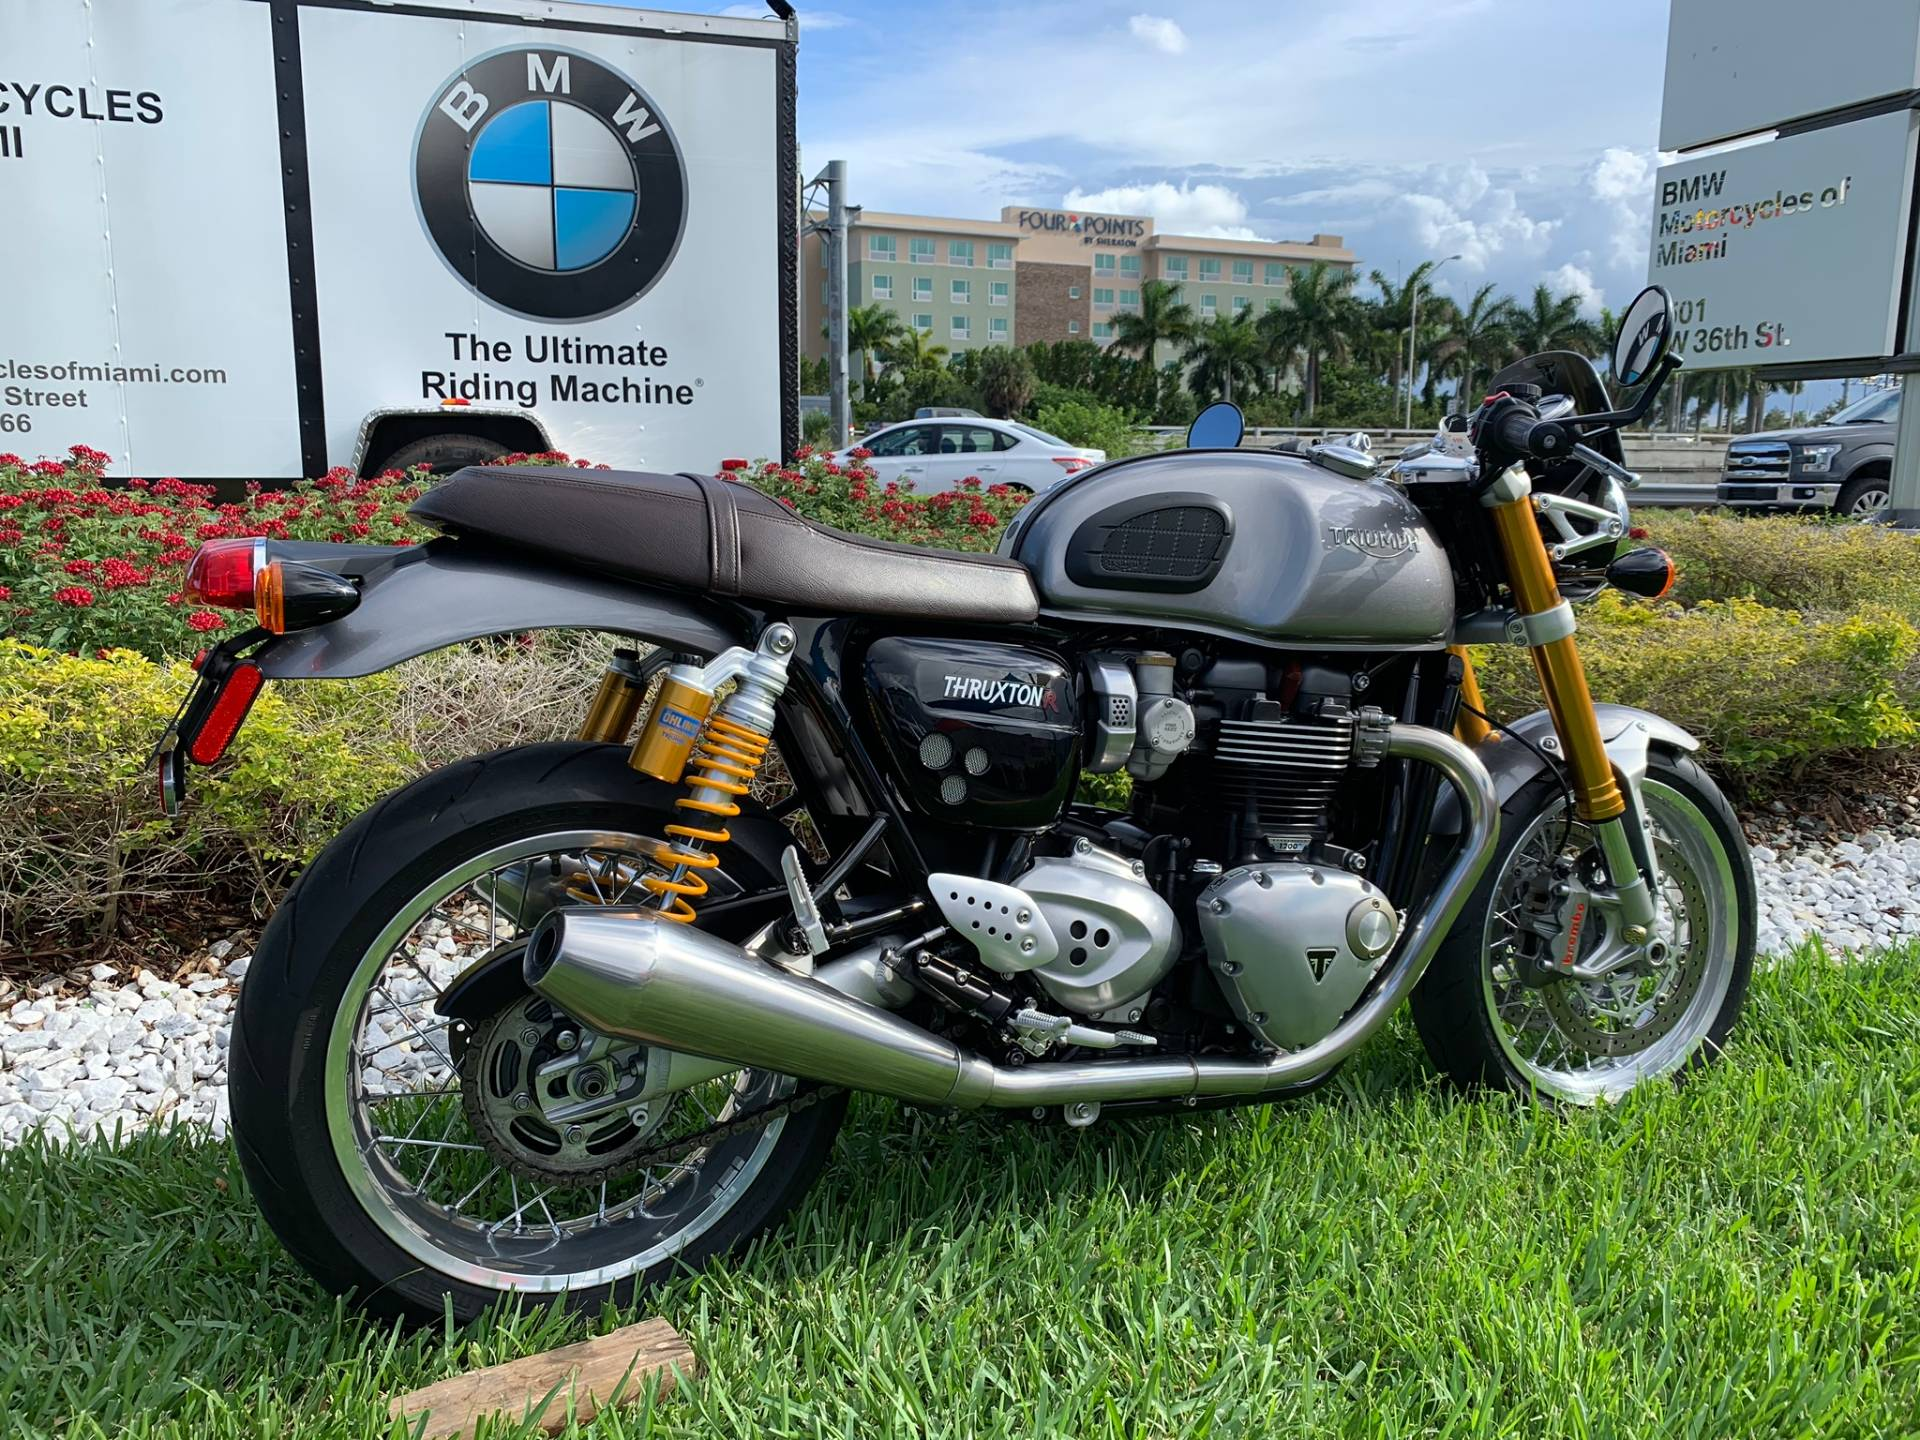 Used 2016 Triumph Thruxton 1200 R for sale,  2016 Triumph Thruxton 1200R for sale,  Triumph Thruxton1200R,  Used ThruxtonR, Cafe. Cruiser, BMW Motorcycles of Miami, Motorcycles of Miami, Motorcycles Miami, New Motorcycles, Used Motorcycles, pre-owned. #BMWMotorcyclesOfMiami #MotorcyclesOfMiami #Moto - Photo 20